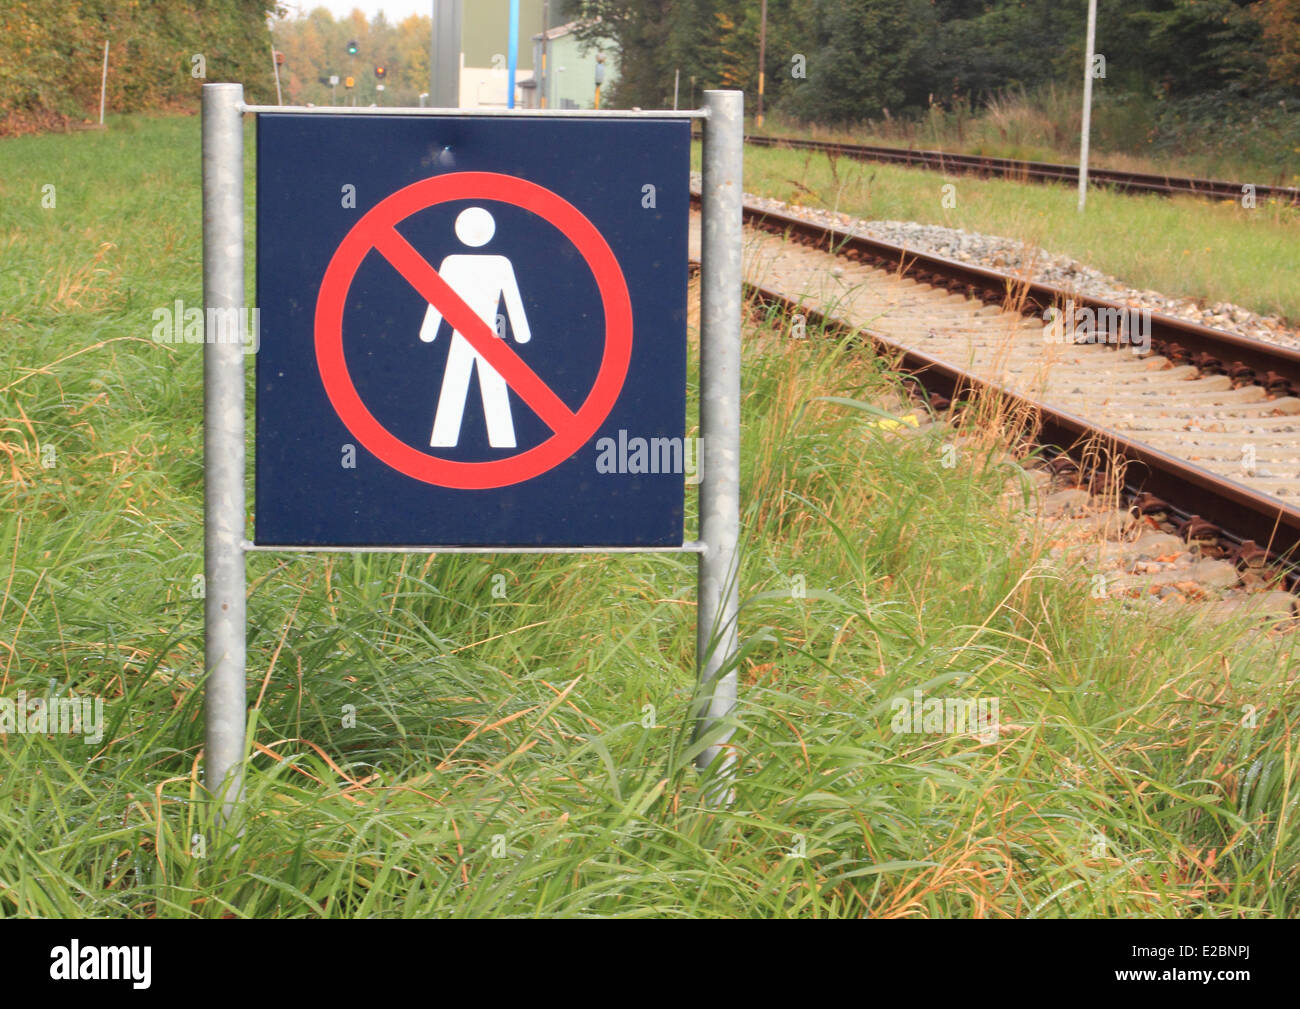 Sign prohibits access to a railway area - Stock Image